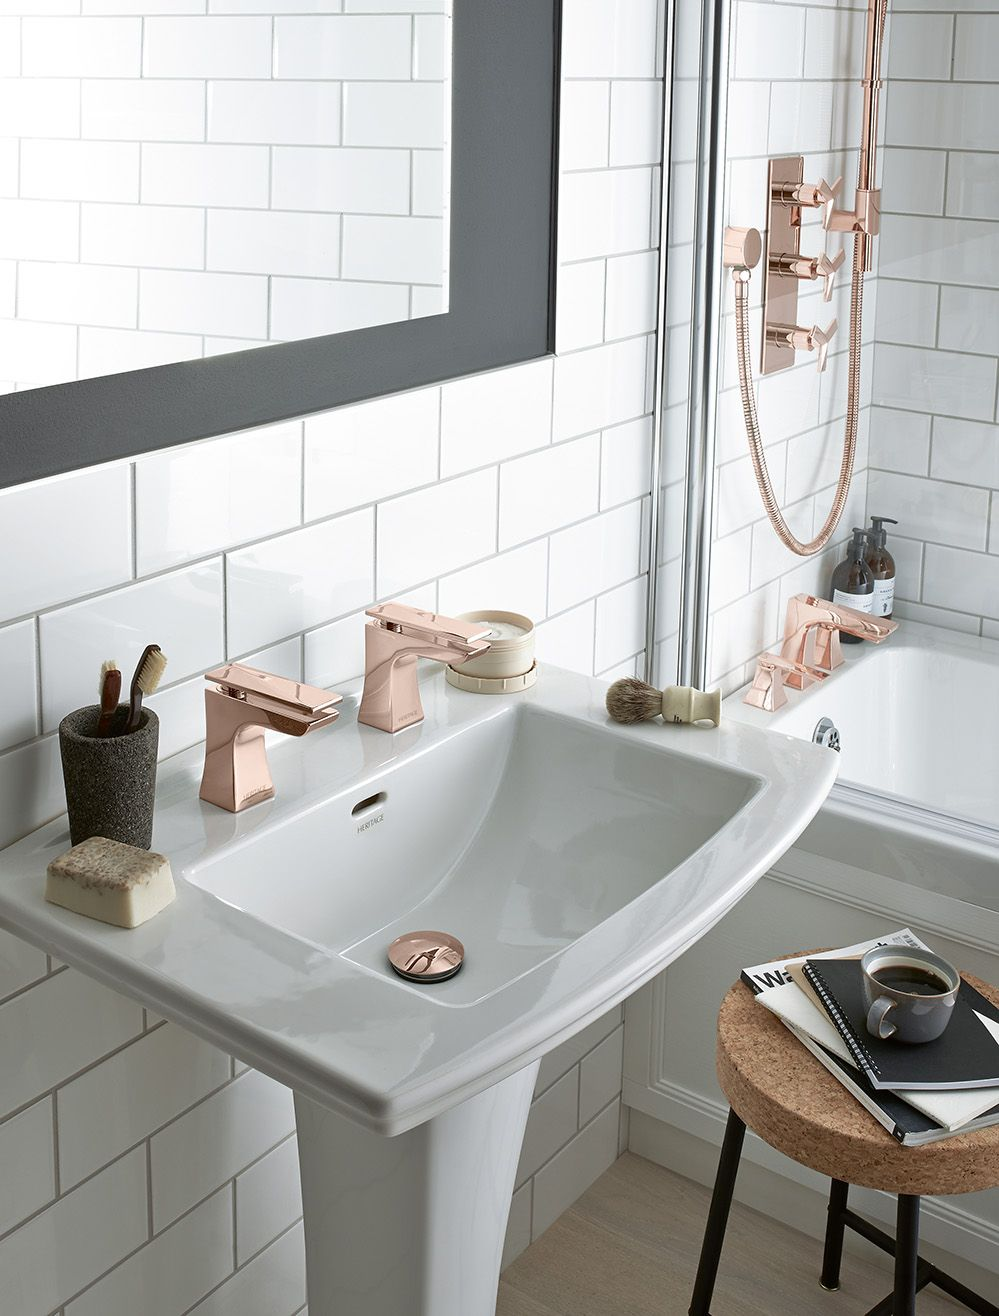 Add a touch of class with the Heritage rose gold tap and shower ...